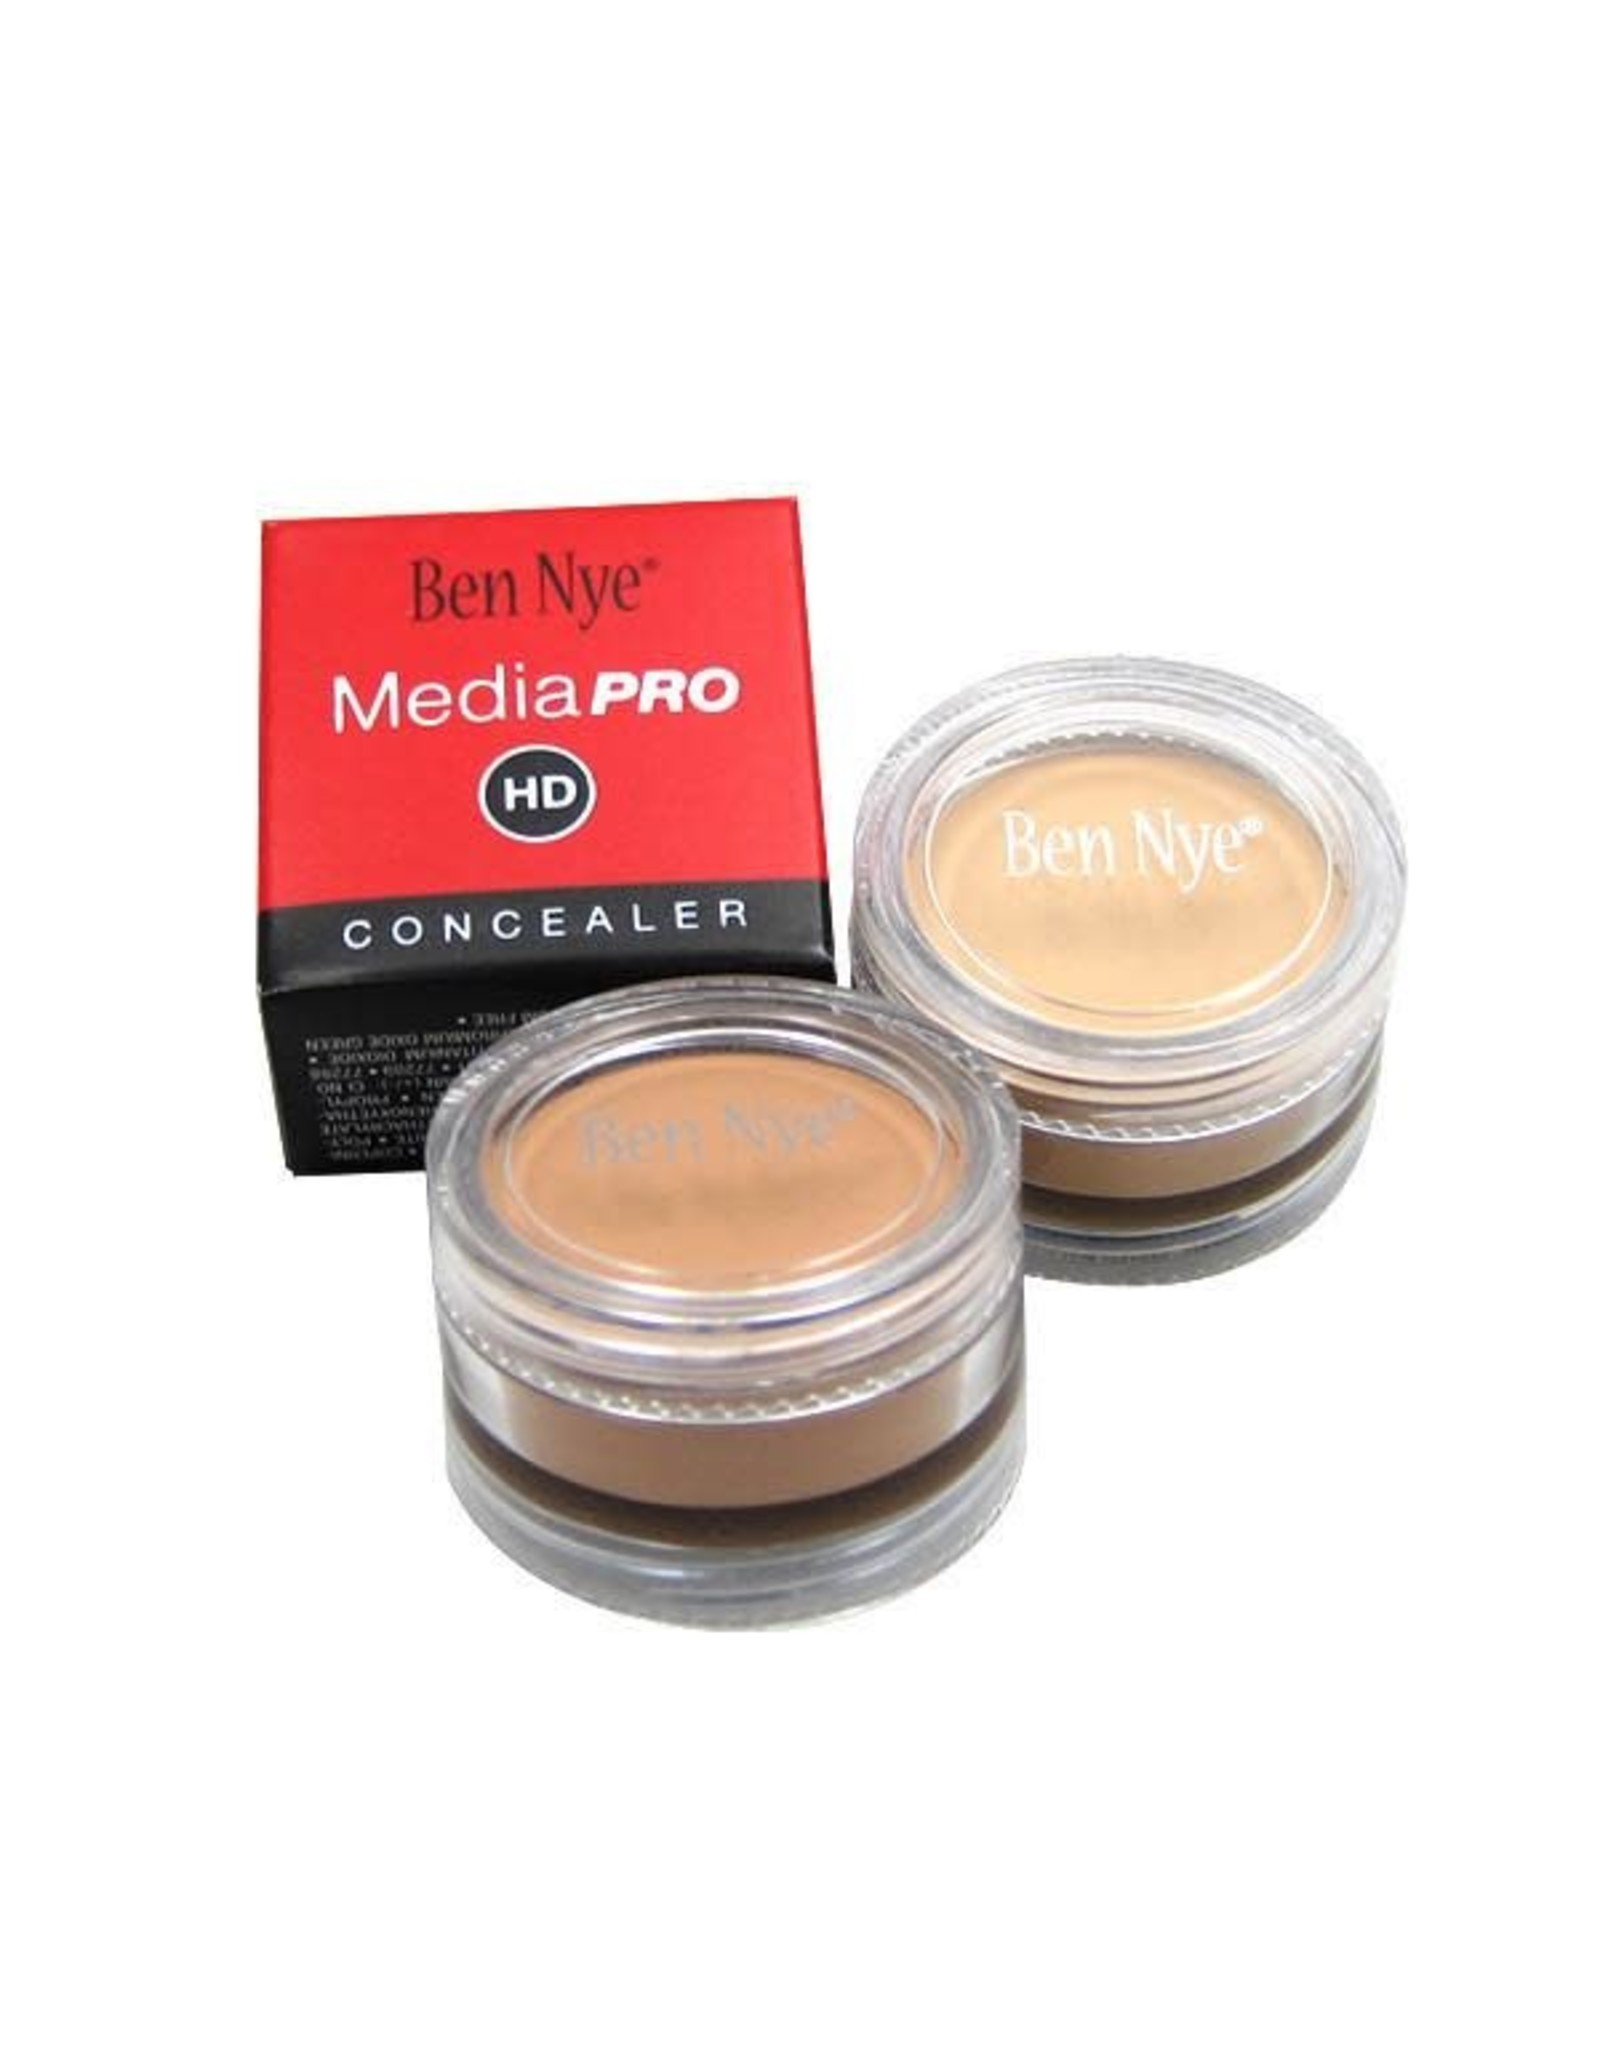 Ben Nye Ben Nye Mellow Orange Concealers & Adjusters